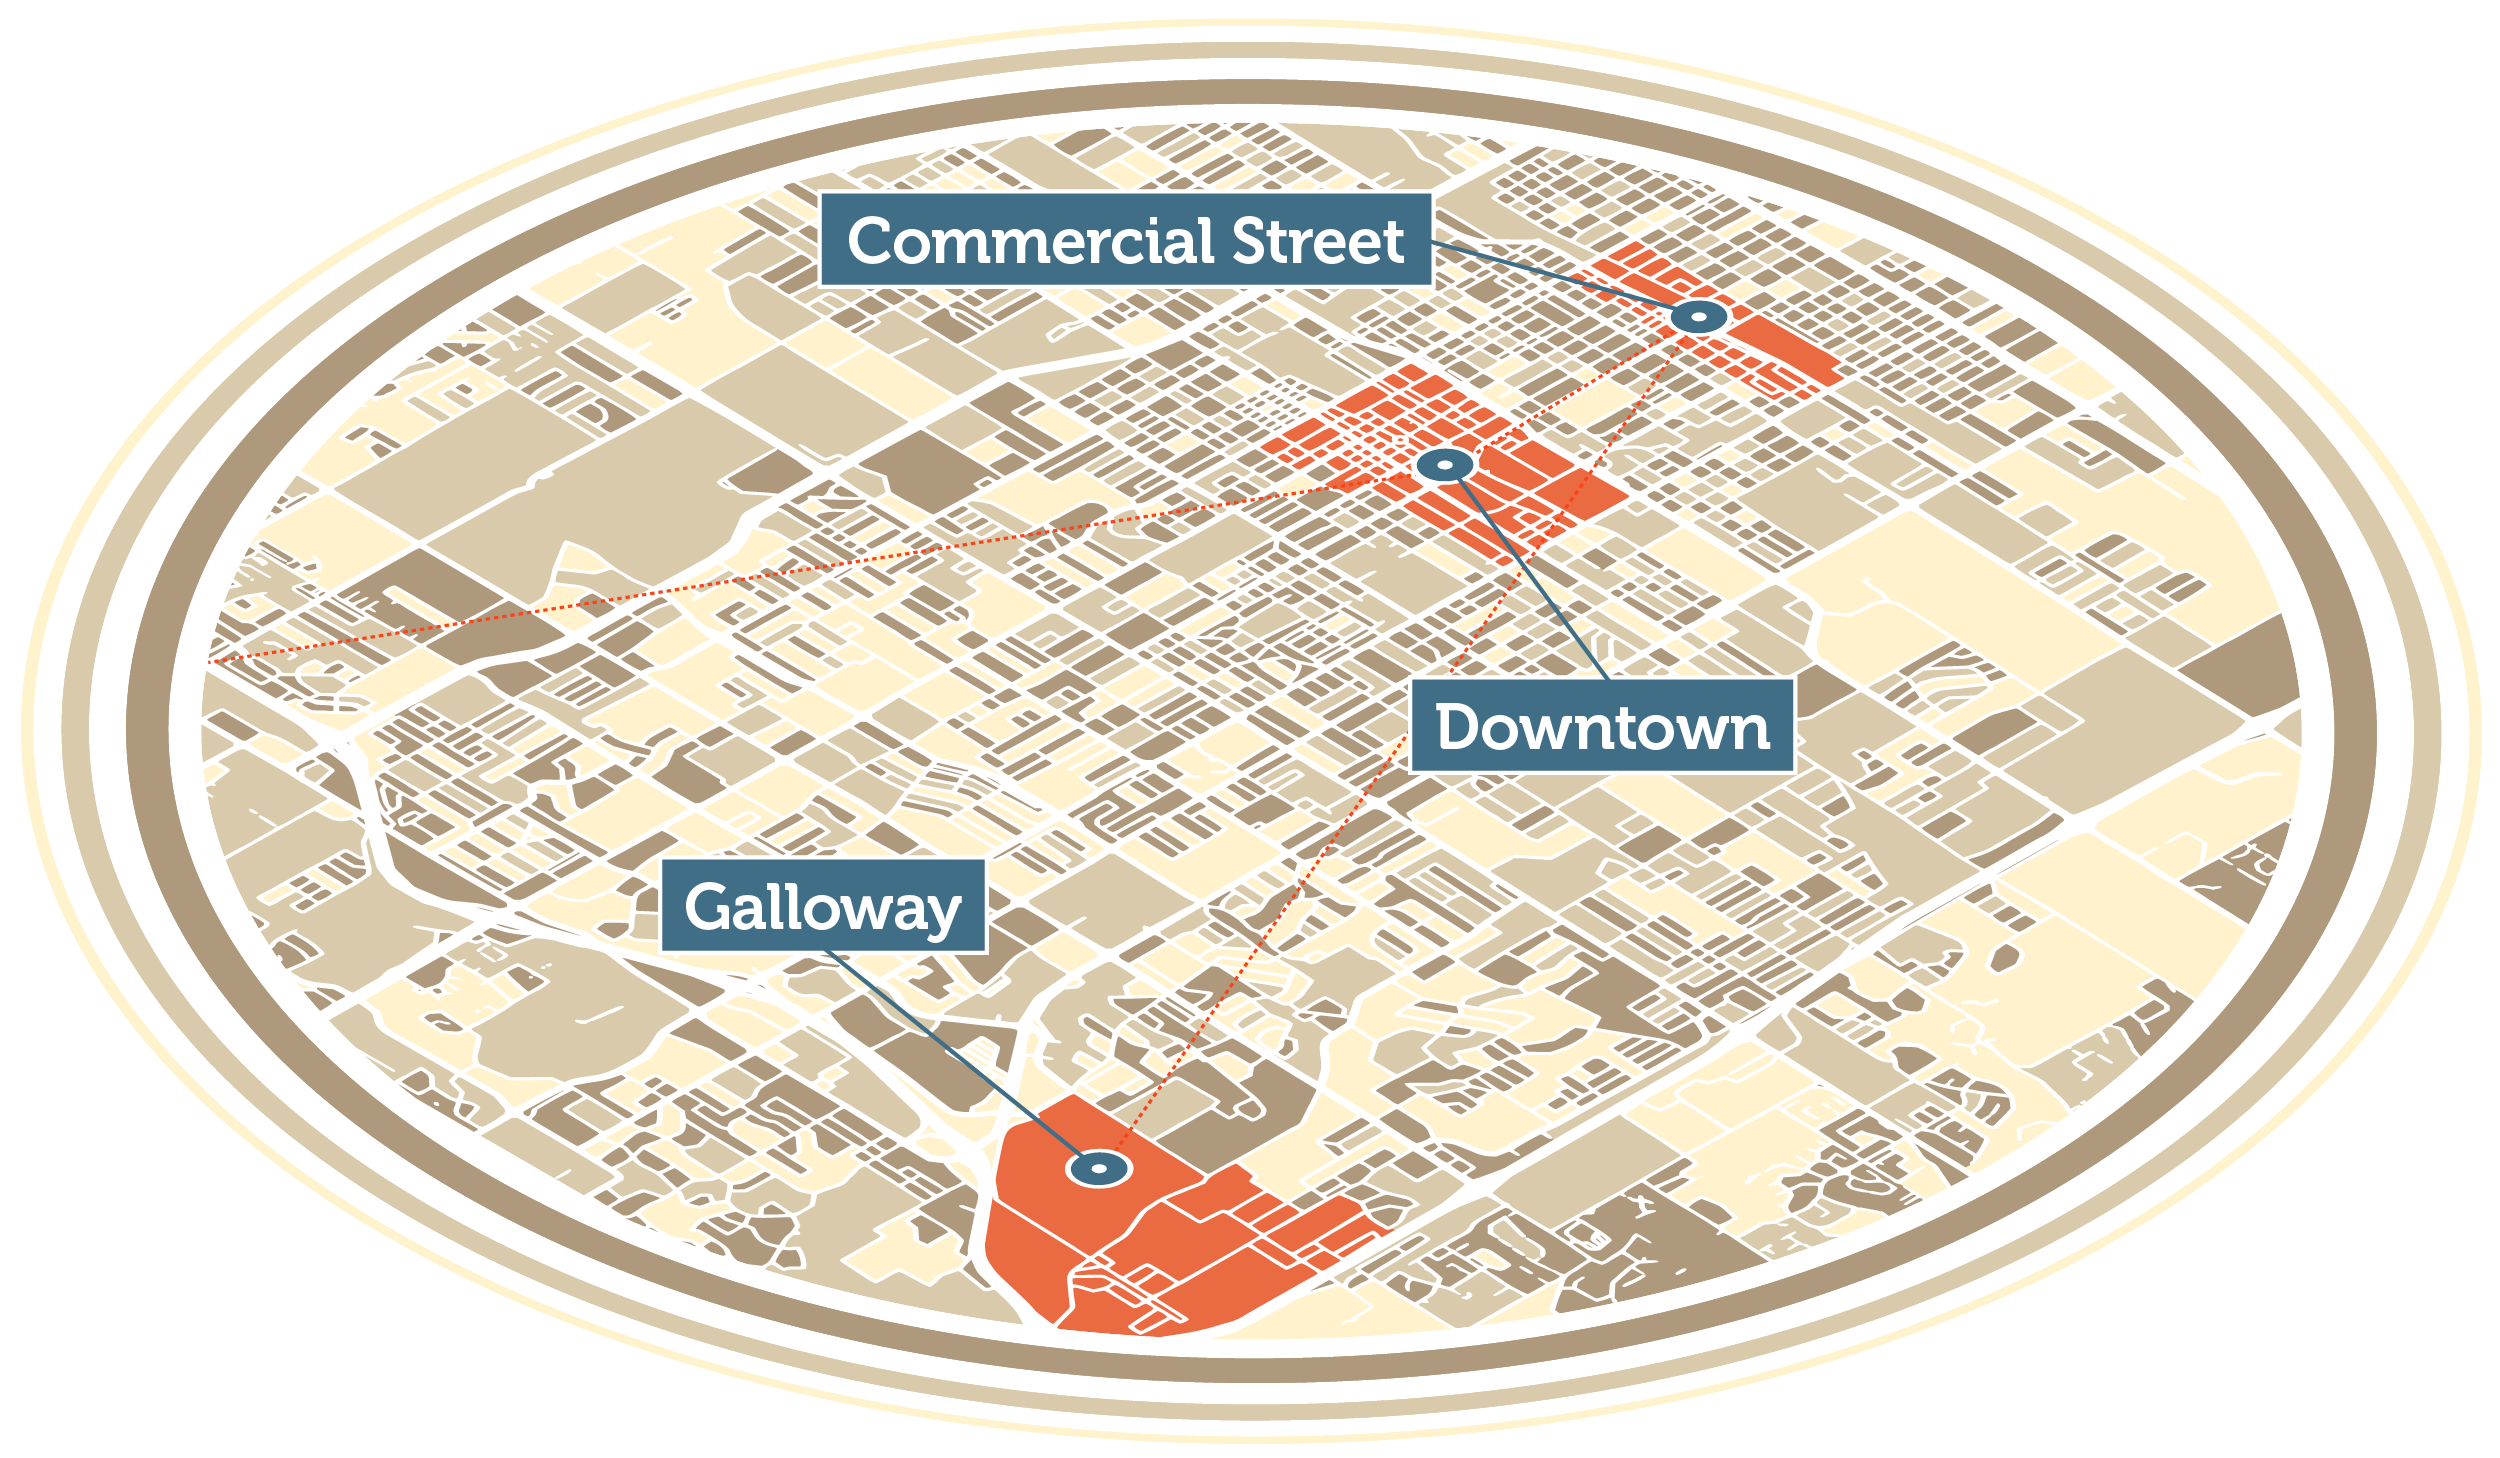 Hot Spots: Rising Developments in Downtown Springfield, Commercial Street and Galloway